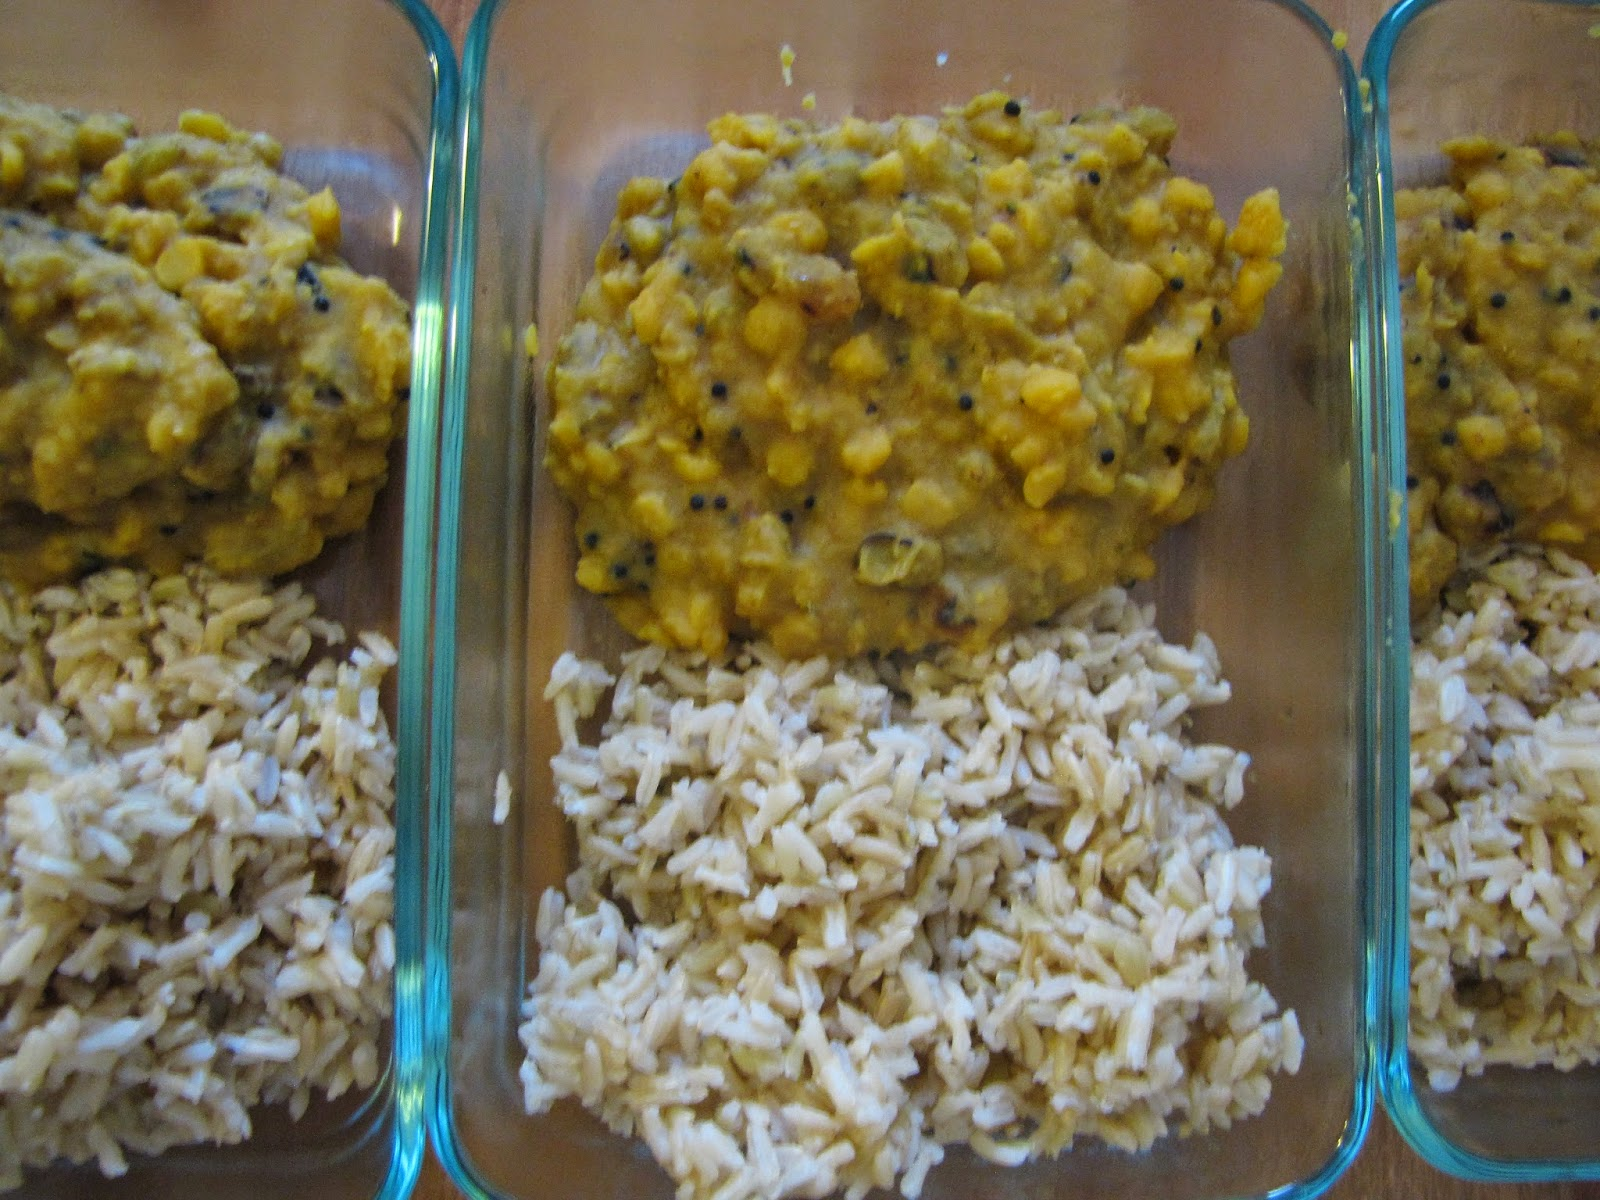 A packed lunch of brown rice and cholar dal in a pyrex dish